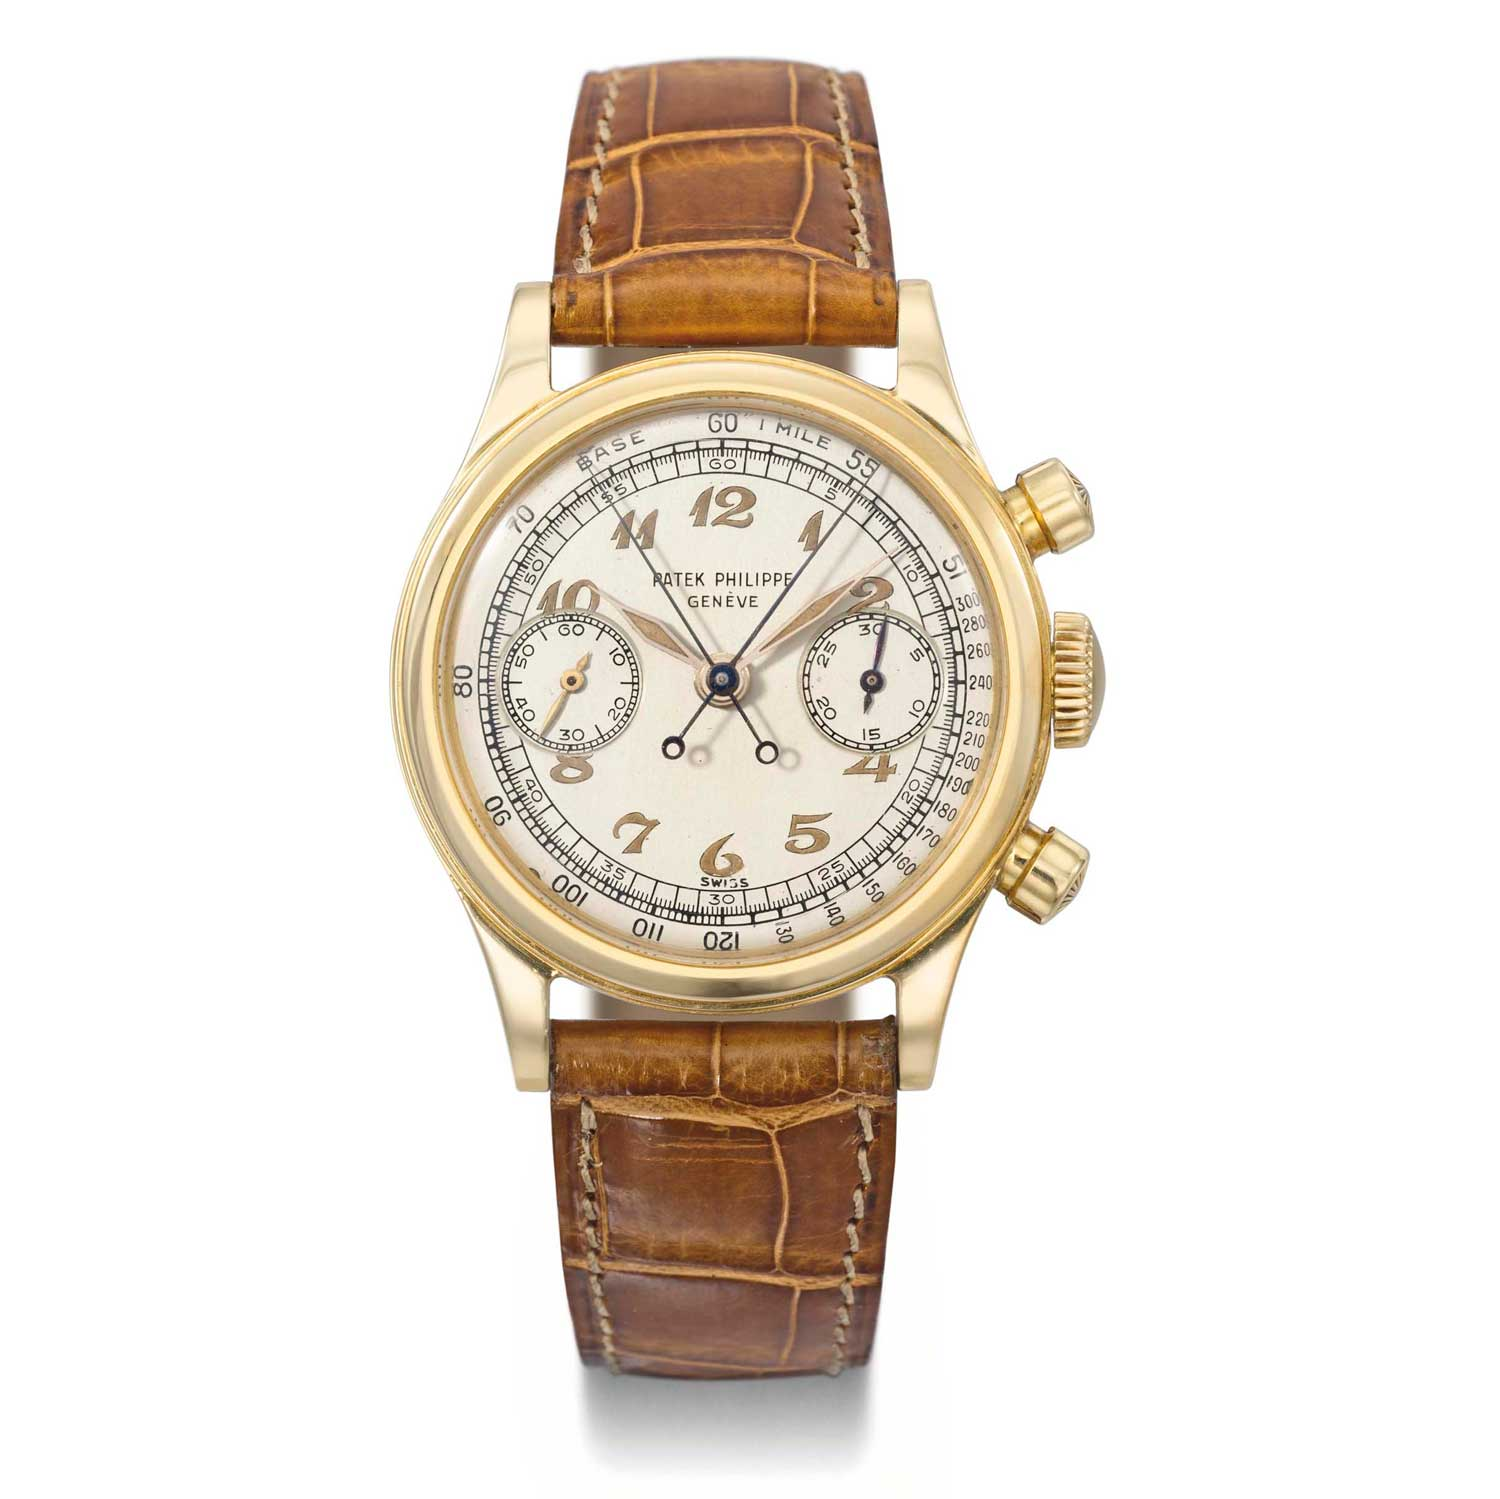 1947 Patek Philippe ref. 1563 gold split second chronograph with luminous Breguet numerals dial (Image: Christies.com)